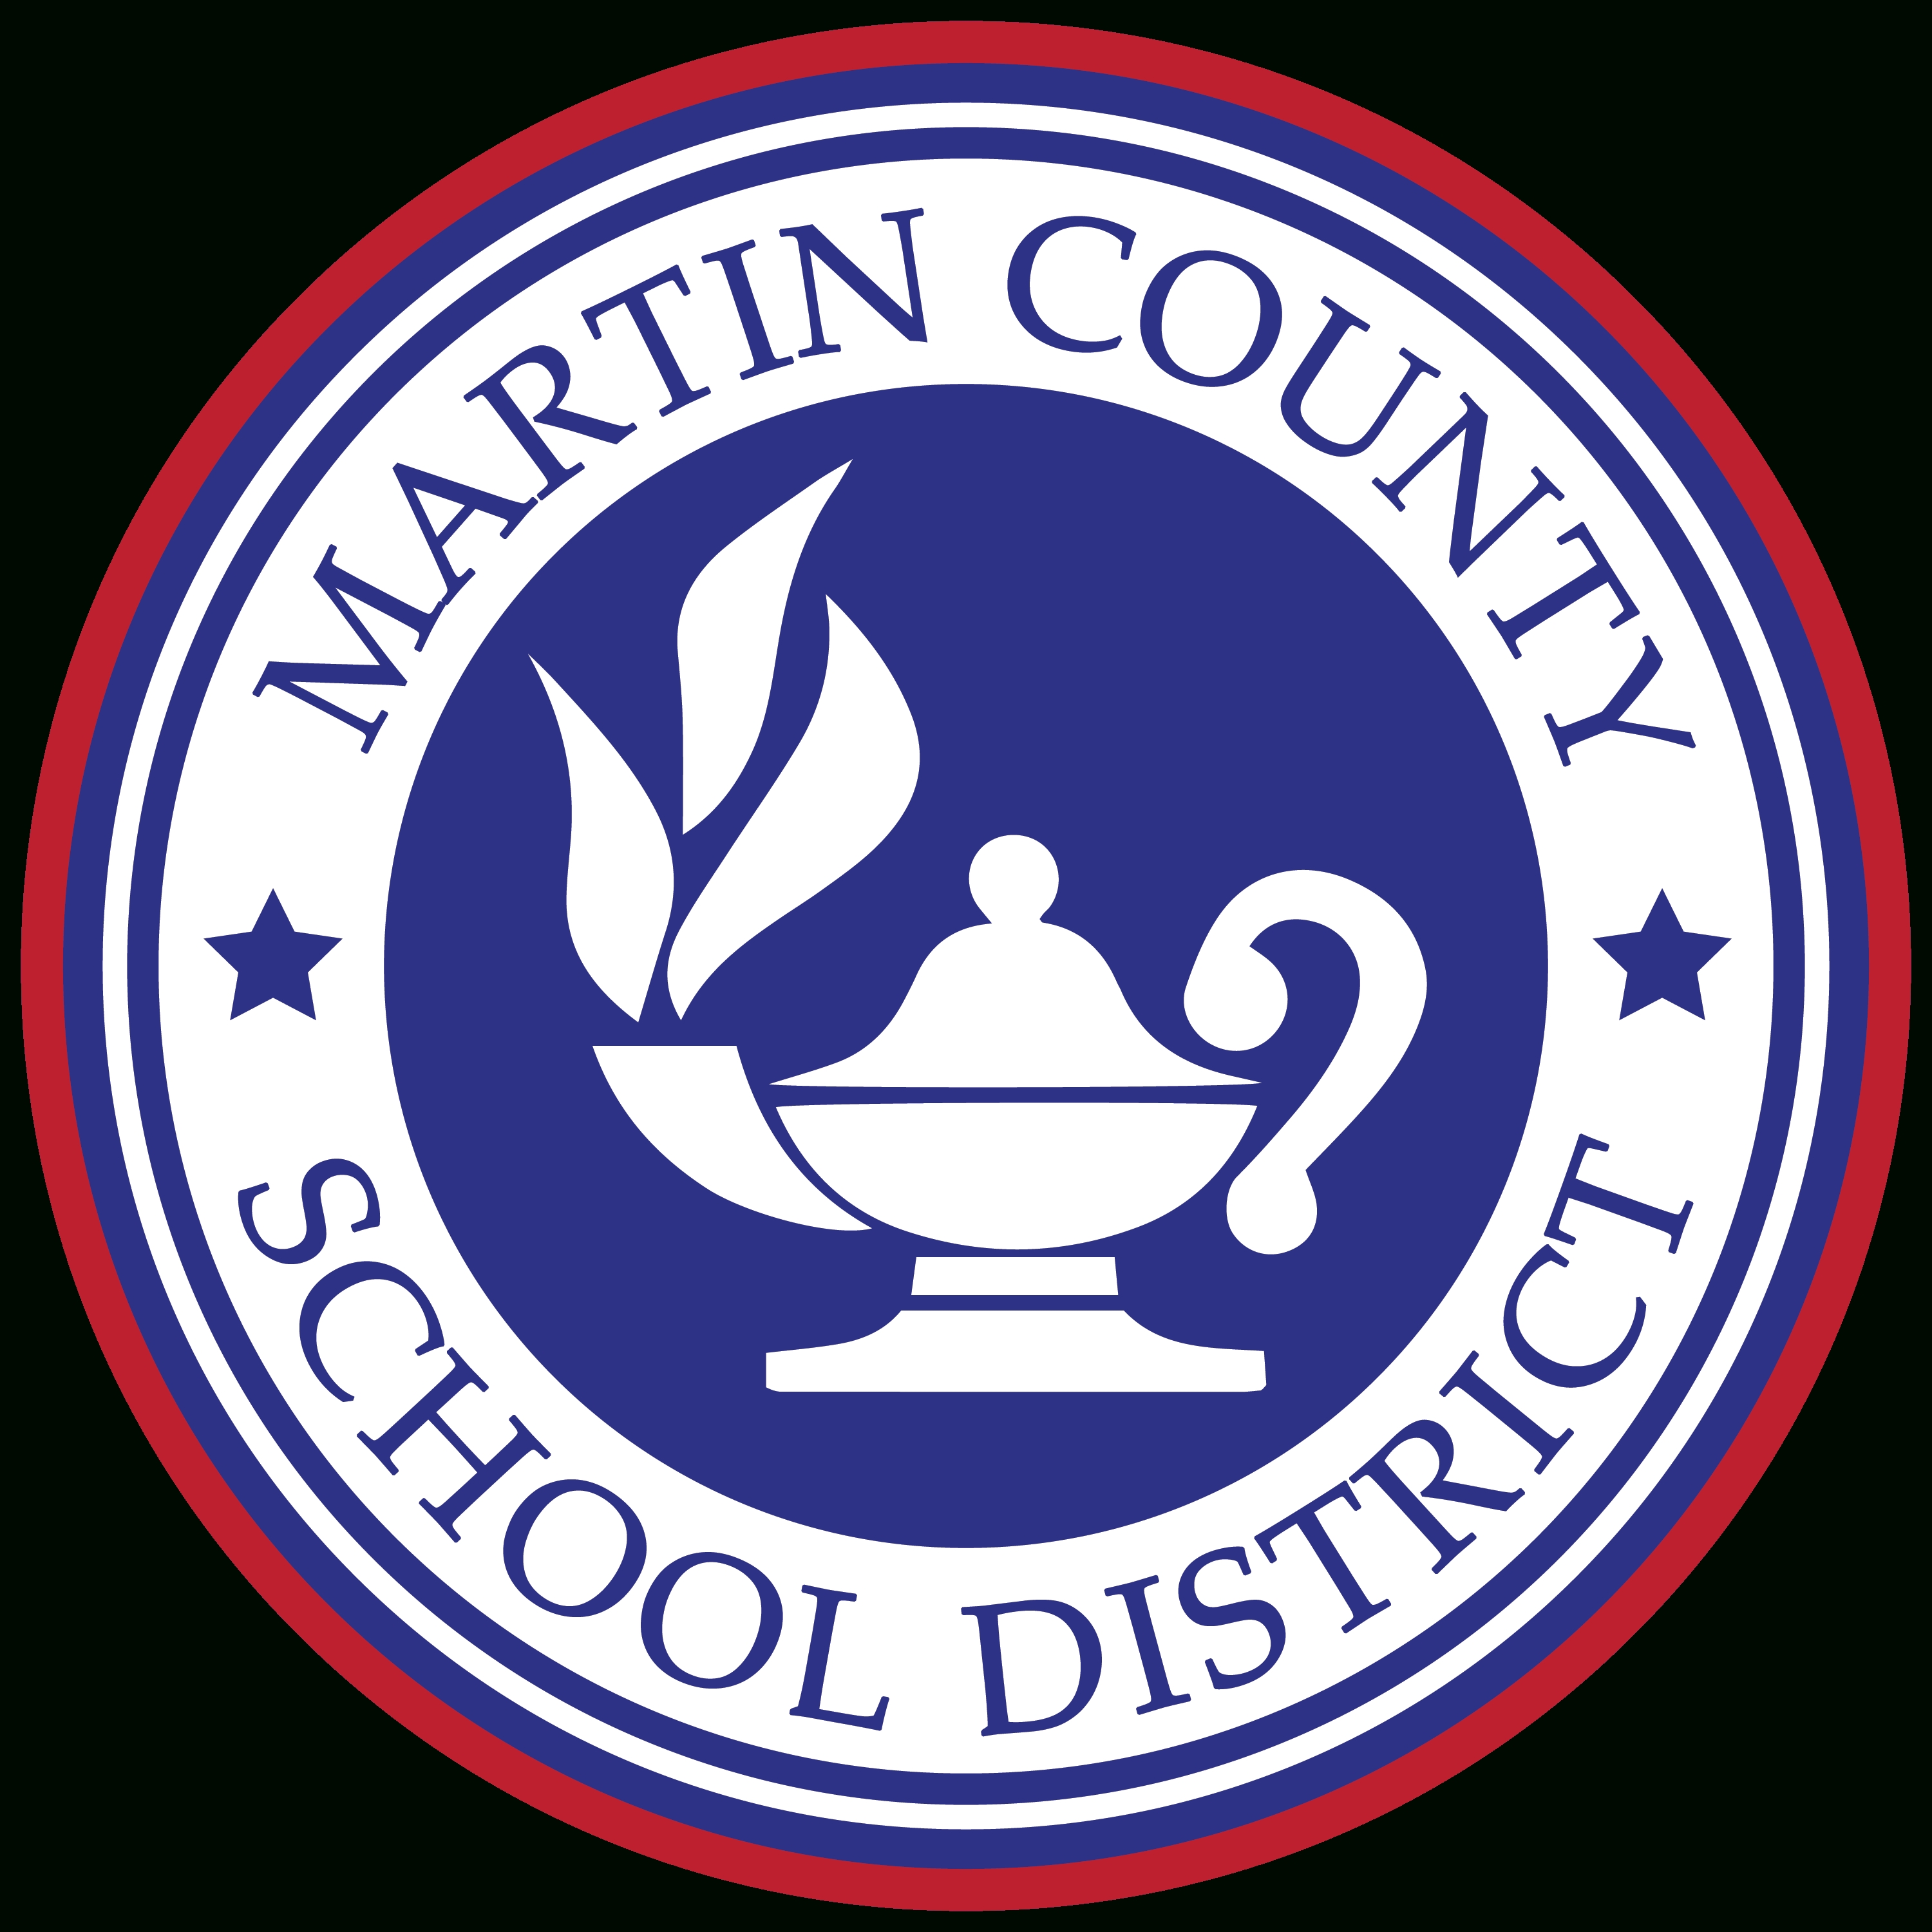 Martin County School District / Calendars_School Calendar Martin County